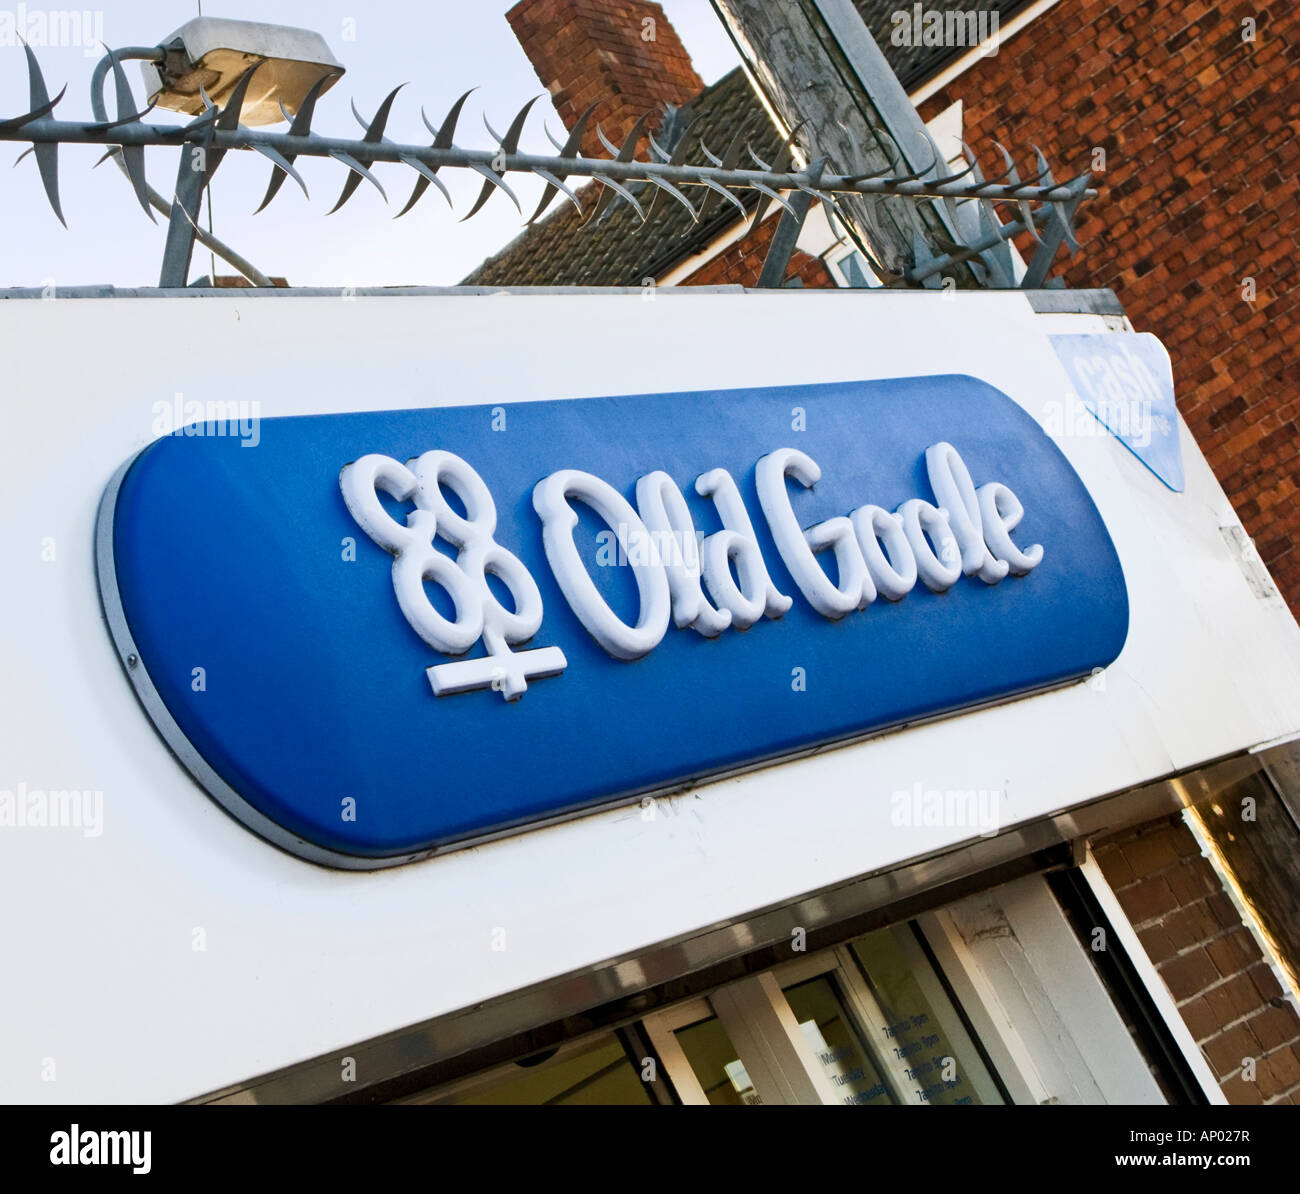 Co-Op convenience store in Old Goole East Yorkshire England UK - Stock Image